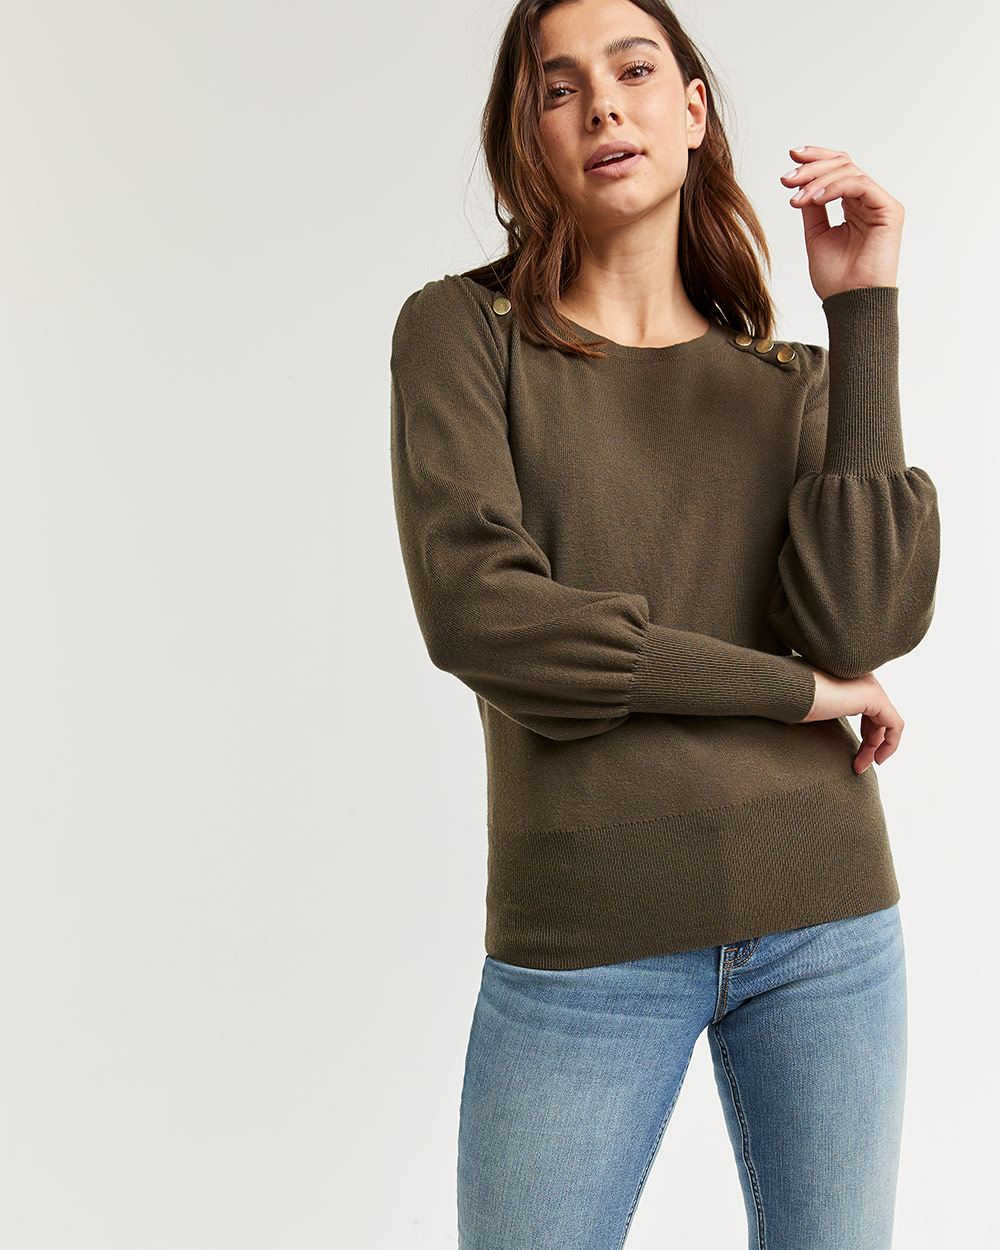 Puff Sleeve Sweater with Buttons at Shoulders